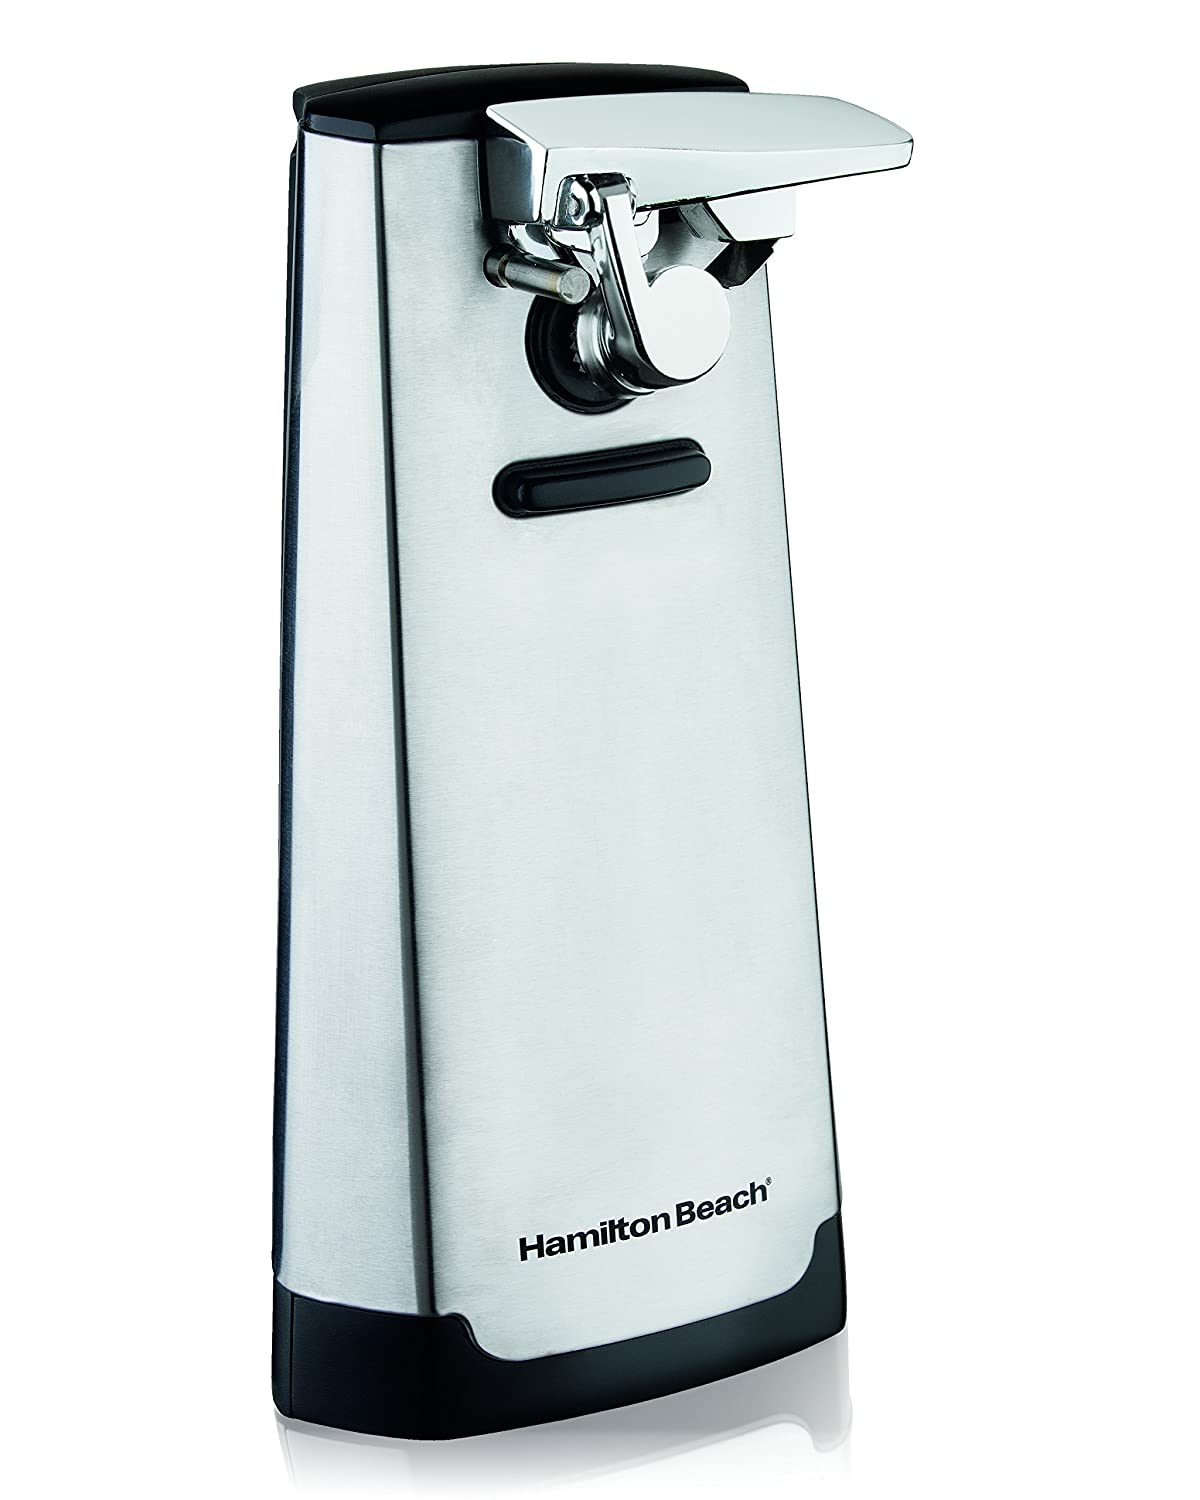 Hamilton Beach 76700 Electric Can Opener